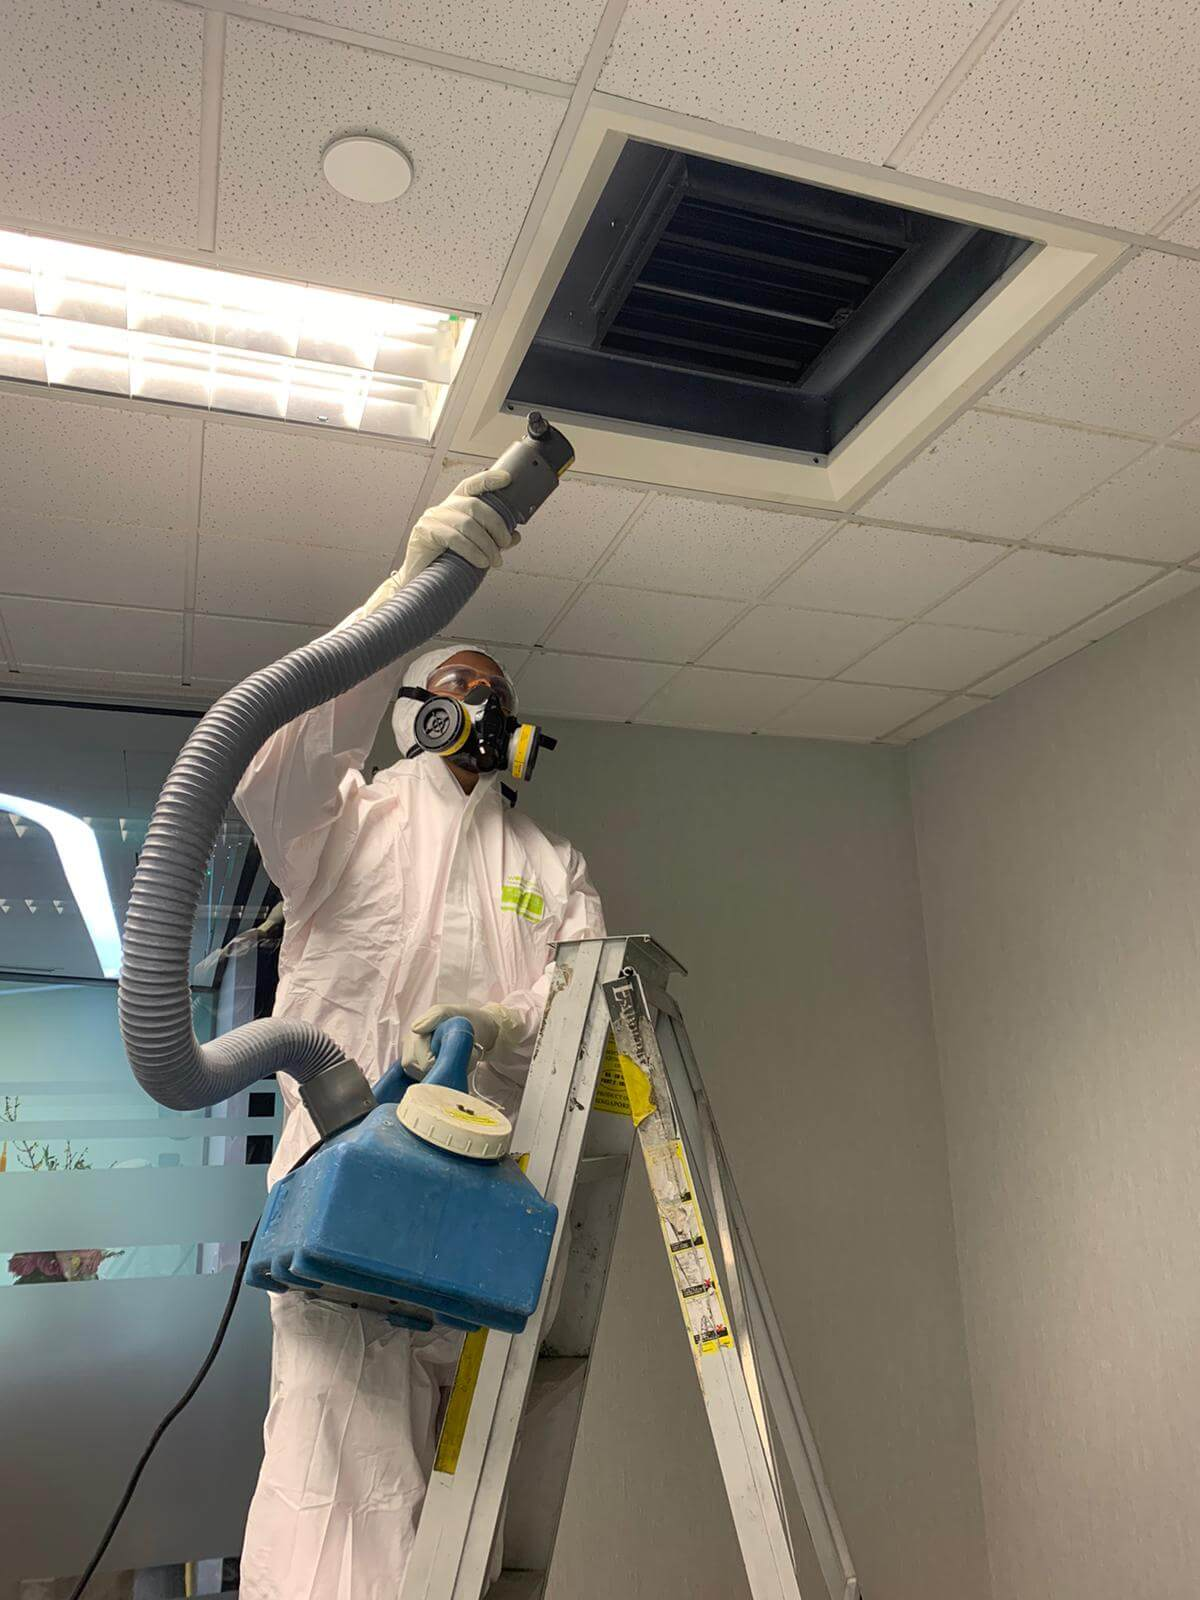 Technician Disinfecting a Facility